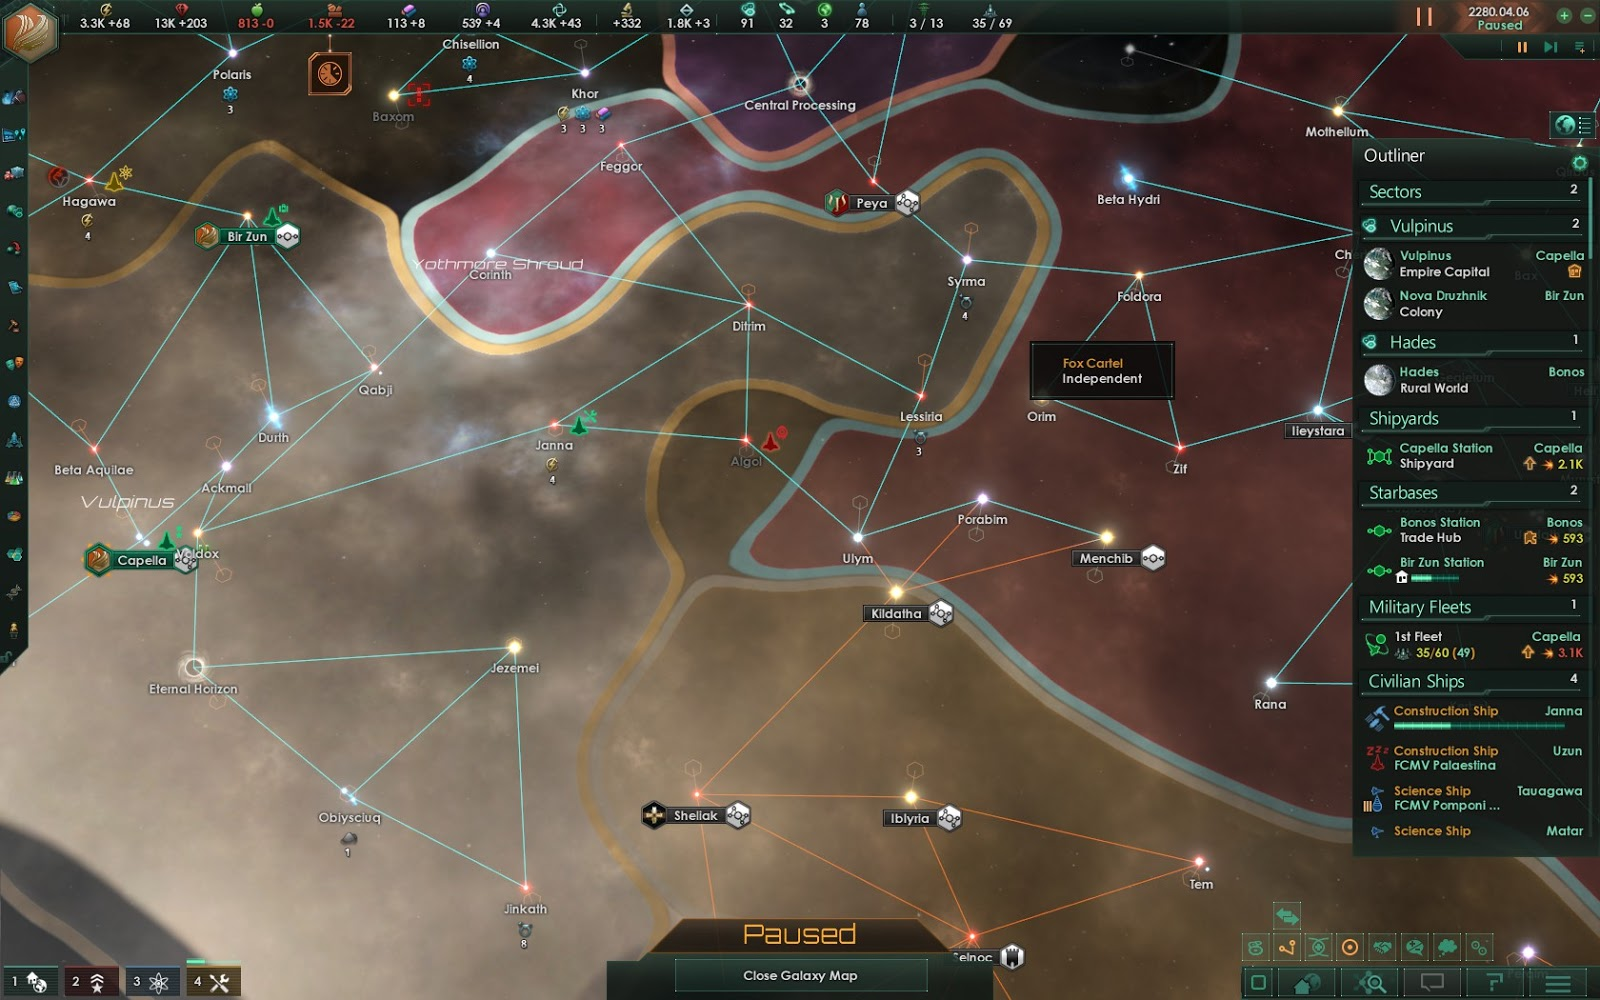 Gaming with SilentFox: Let's Play Stellaris: Part 20 - The